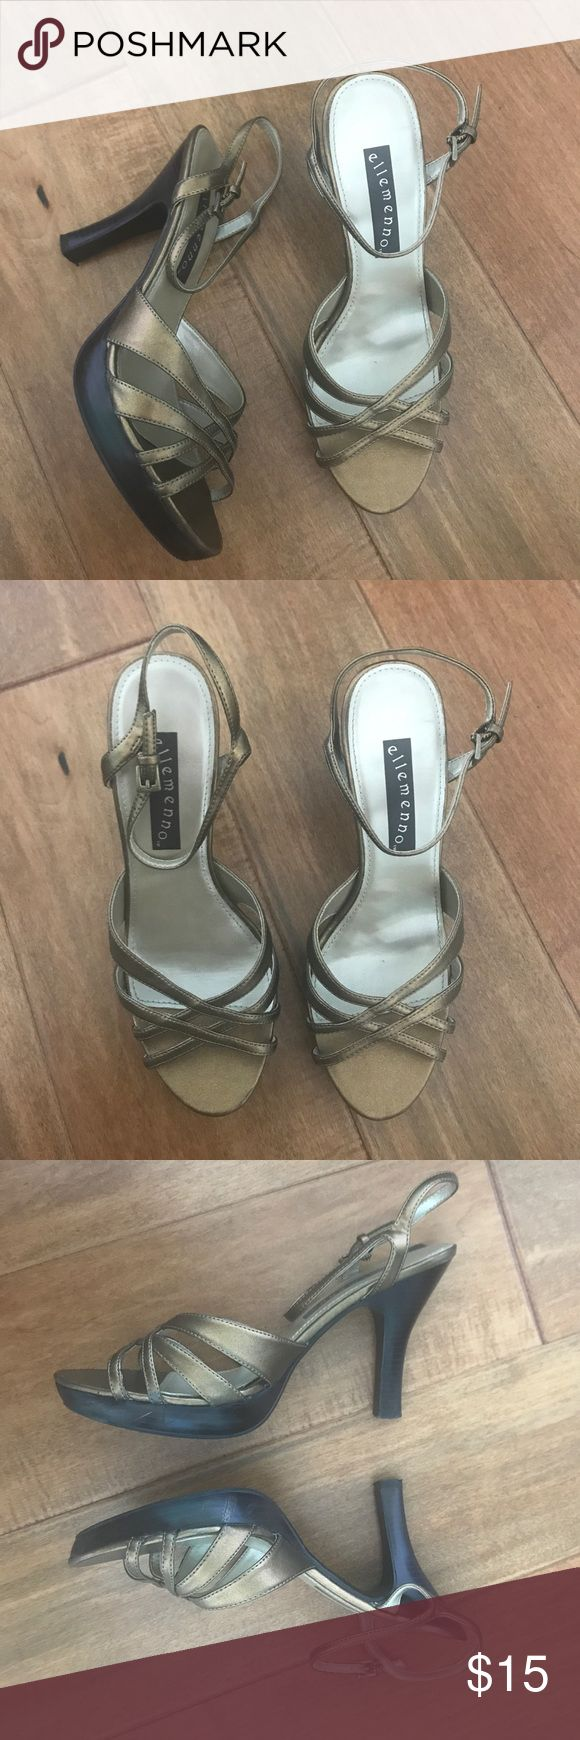 """NWT Charlotte Russe Heels Brand new and never worn. Charlotte Russe """"ellemenno"""" brand heels. Size 9. Bronze/Gold color with wood-like heel and ankle straps. Heel measures 3.5"""" inches tall. A few minor scuff marks, they were purchased that way. Charlotte Russe Shoes Heels"""